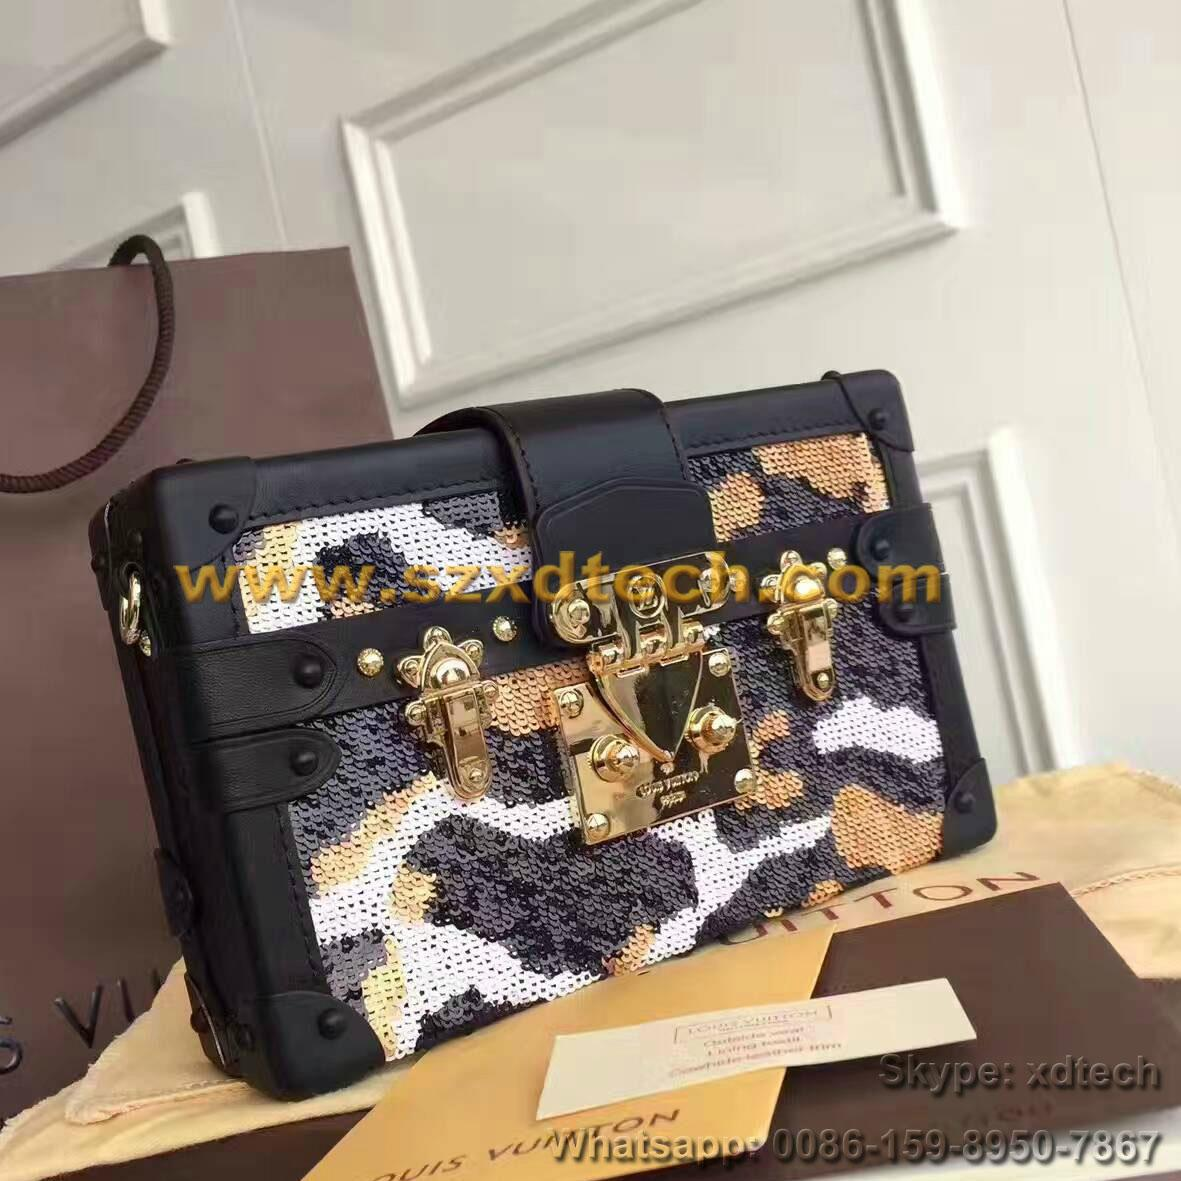 Wholessale LV Handbags Evening Bags Petite Malle Collection 6